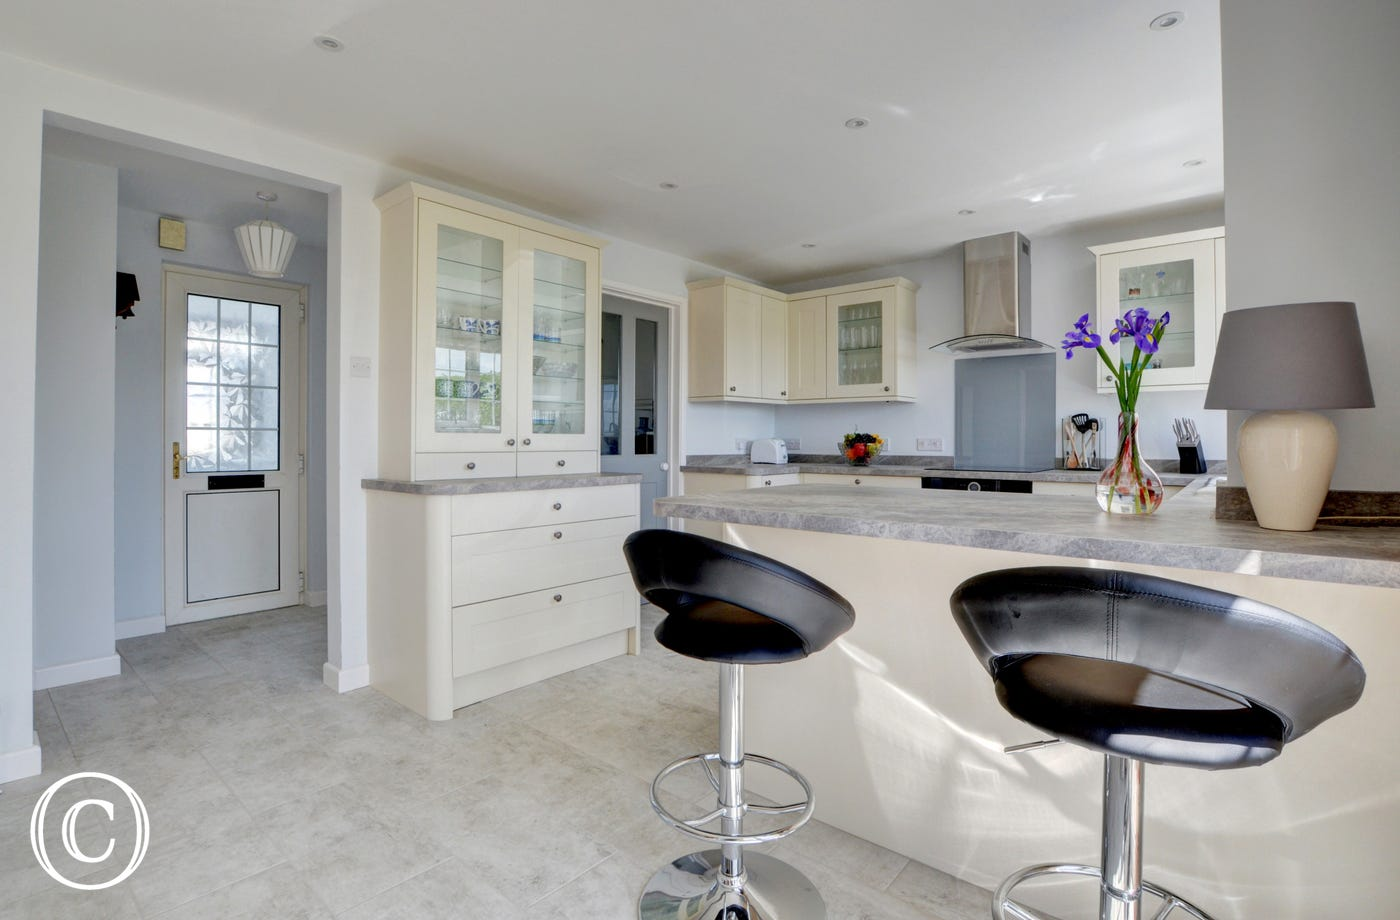 The modern well equipped kitchen area has a small breakfast bar and overlooks the rear garden